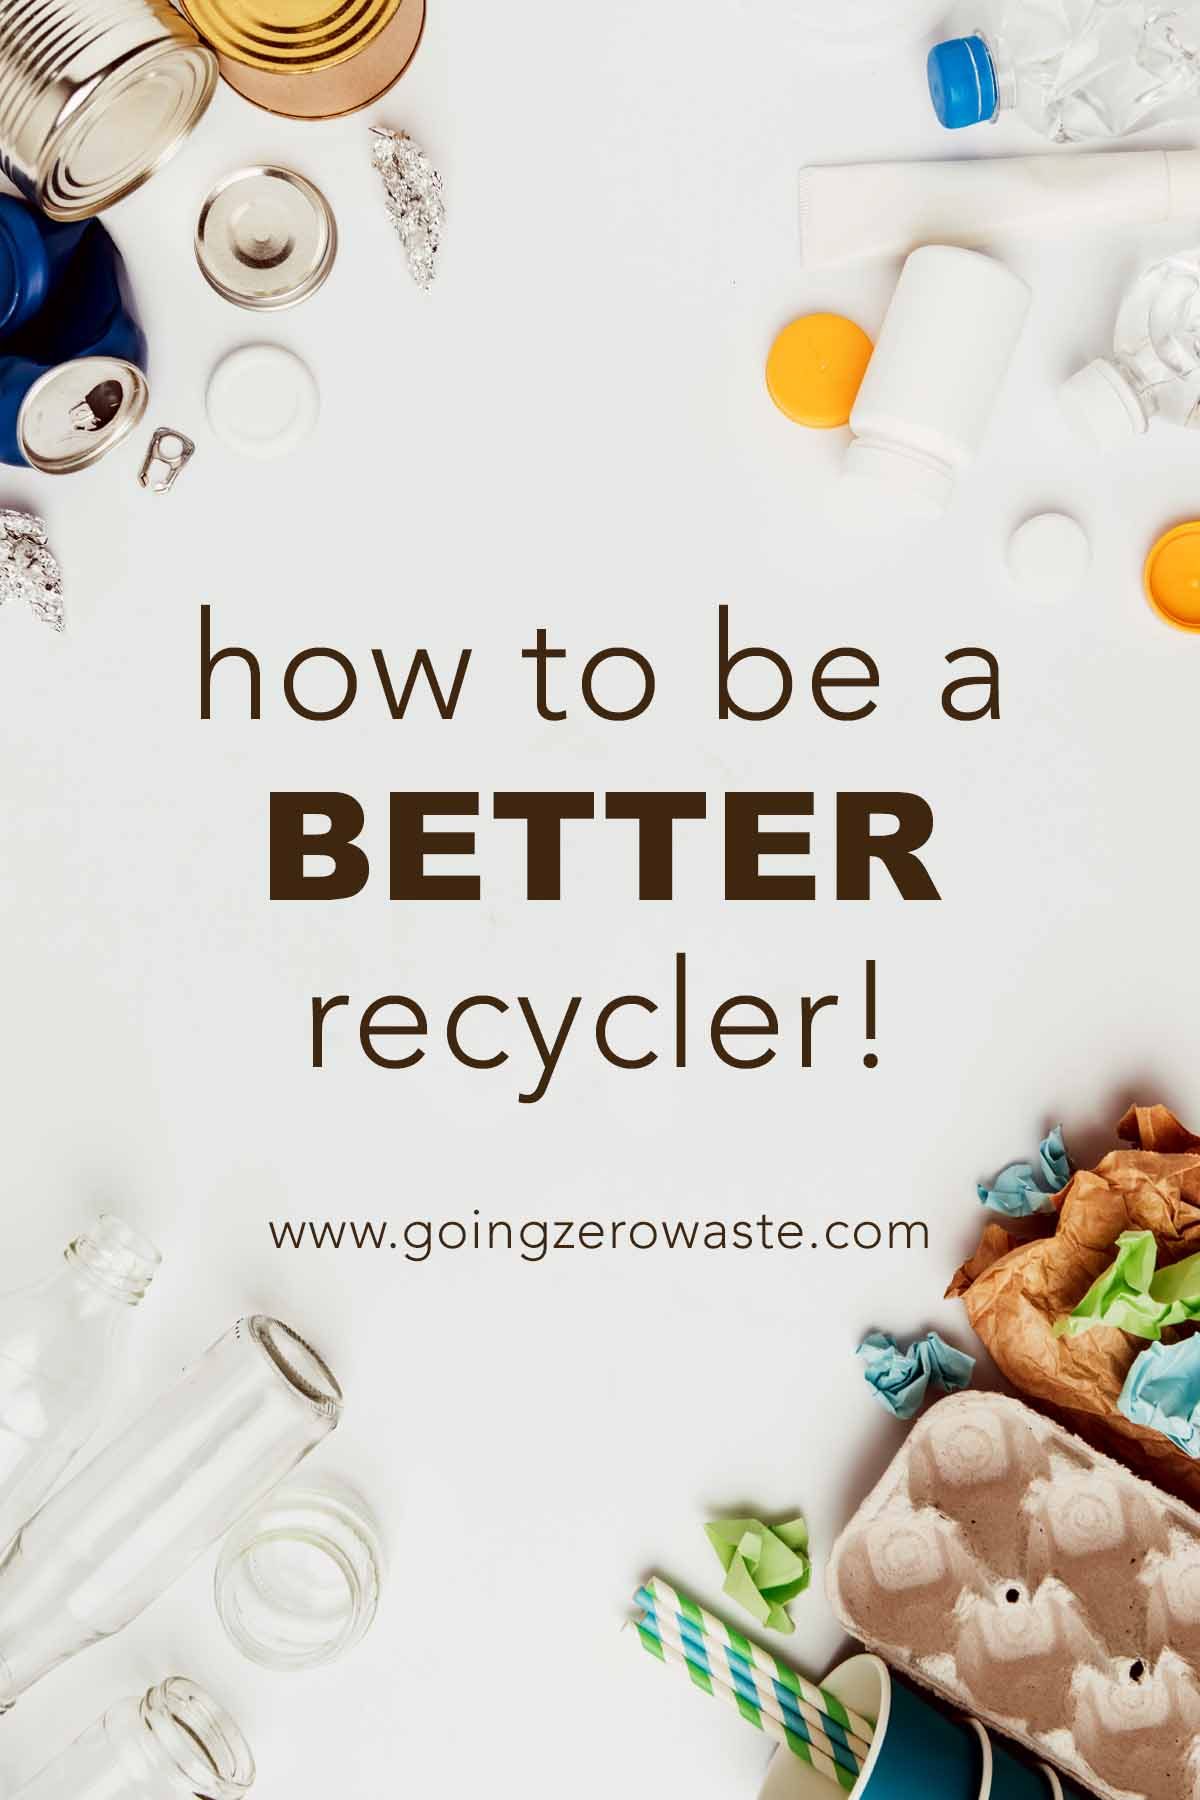 Is recycling even worth it? Tips for being a better recycler from www.goingzerowaste.com #zerowaste #recycling #ecofriendly #sustainable #reducereuserecycle